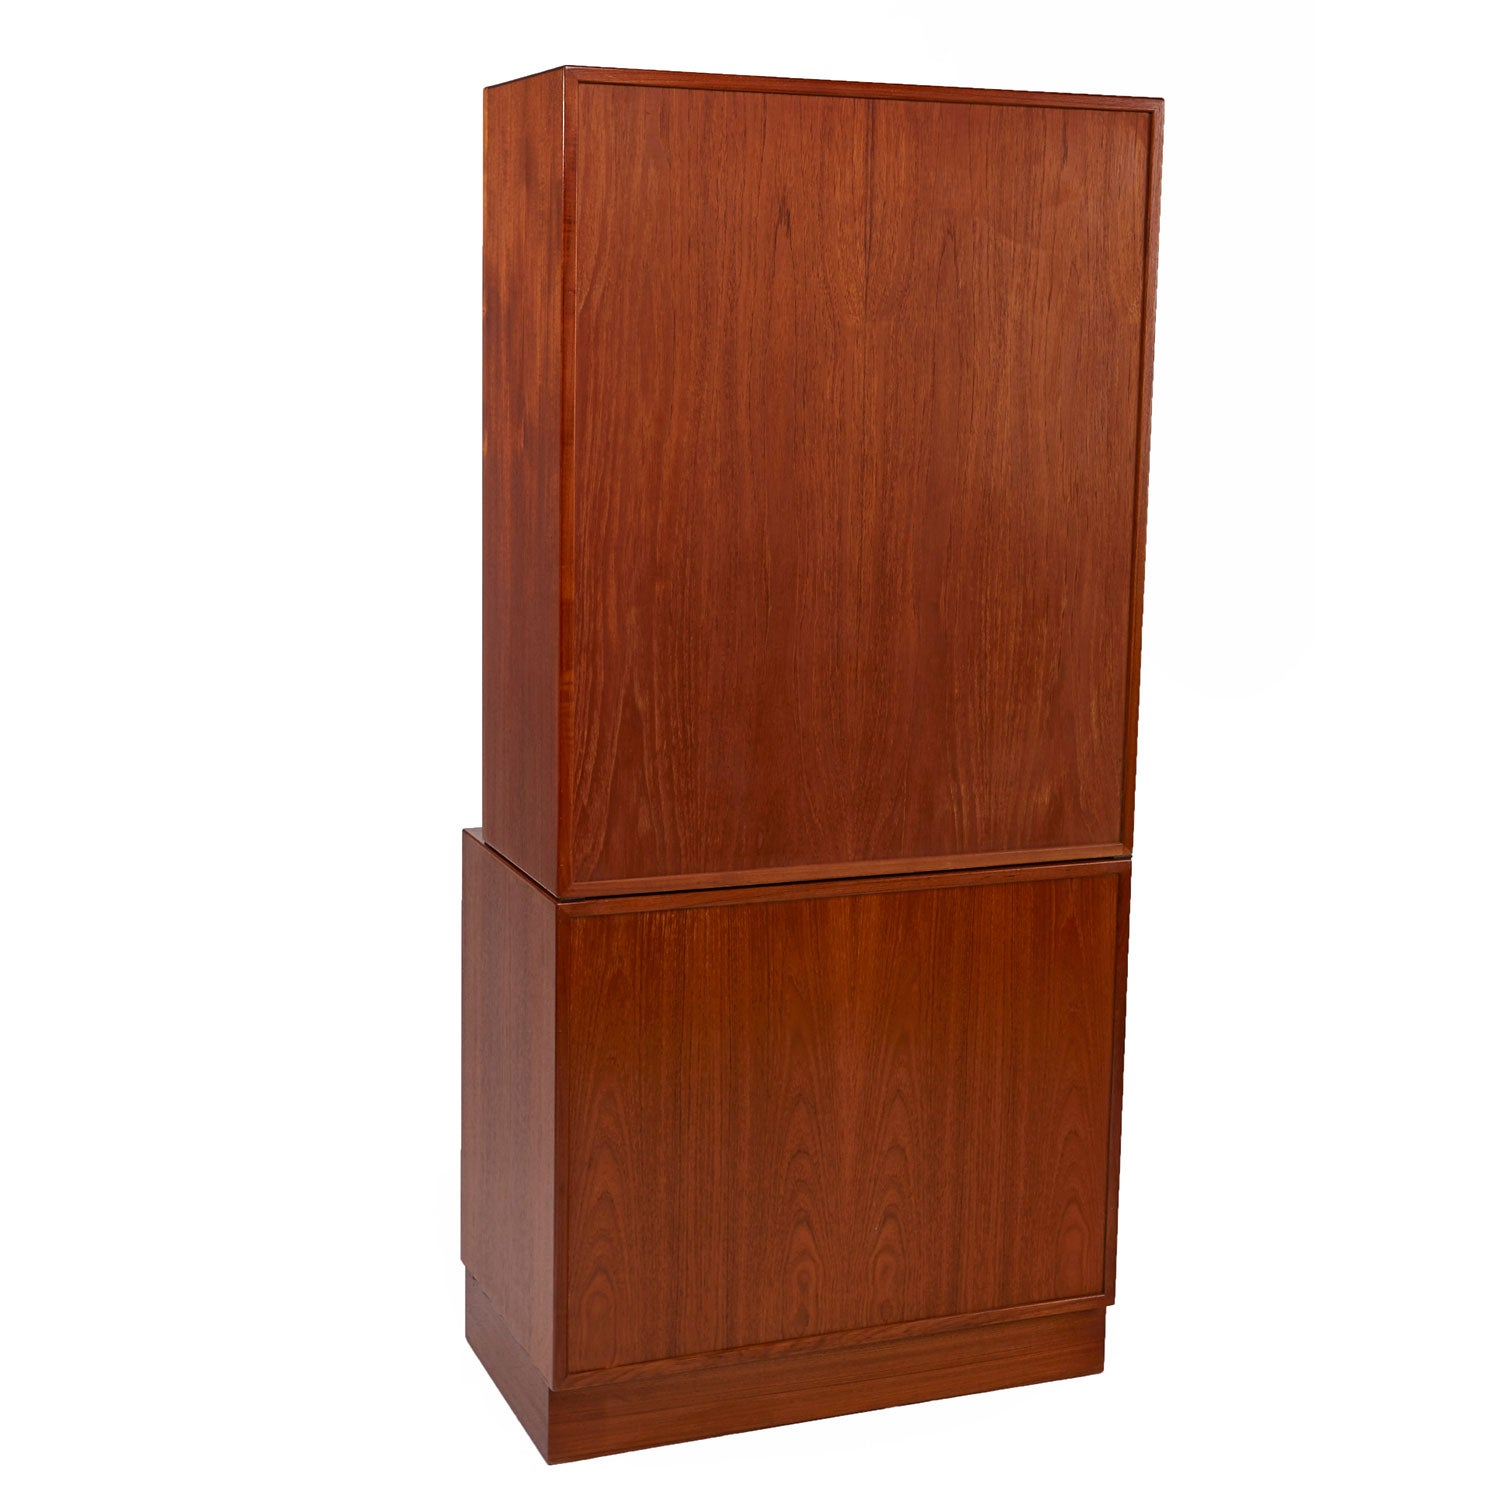 Danish Teak Bookshelf Hutch Cabinet By Lyby Mobler, Circa 1950s For Sale At  1stdibs